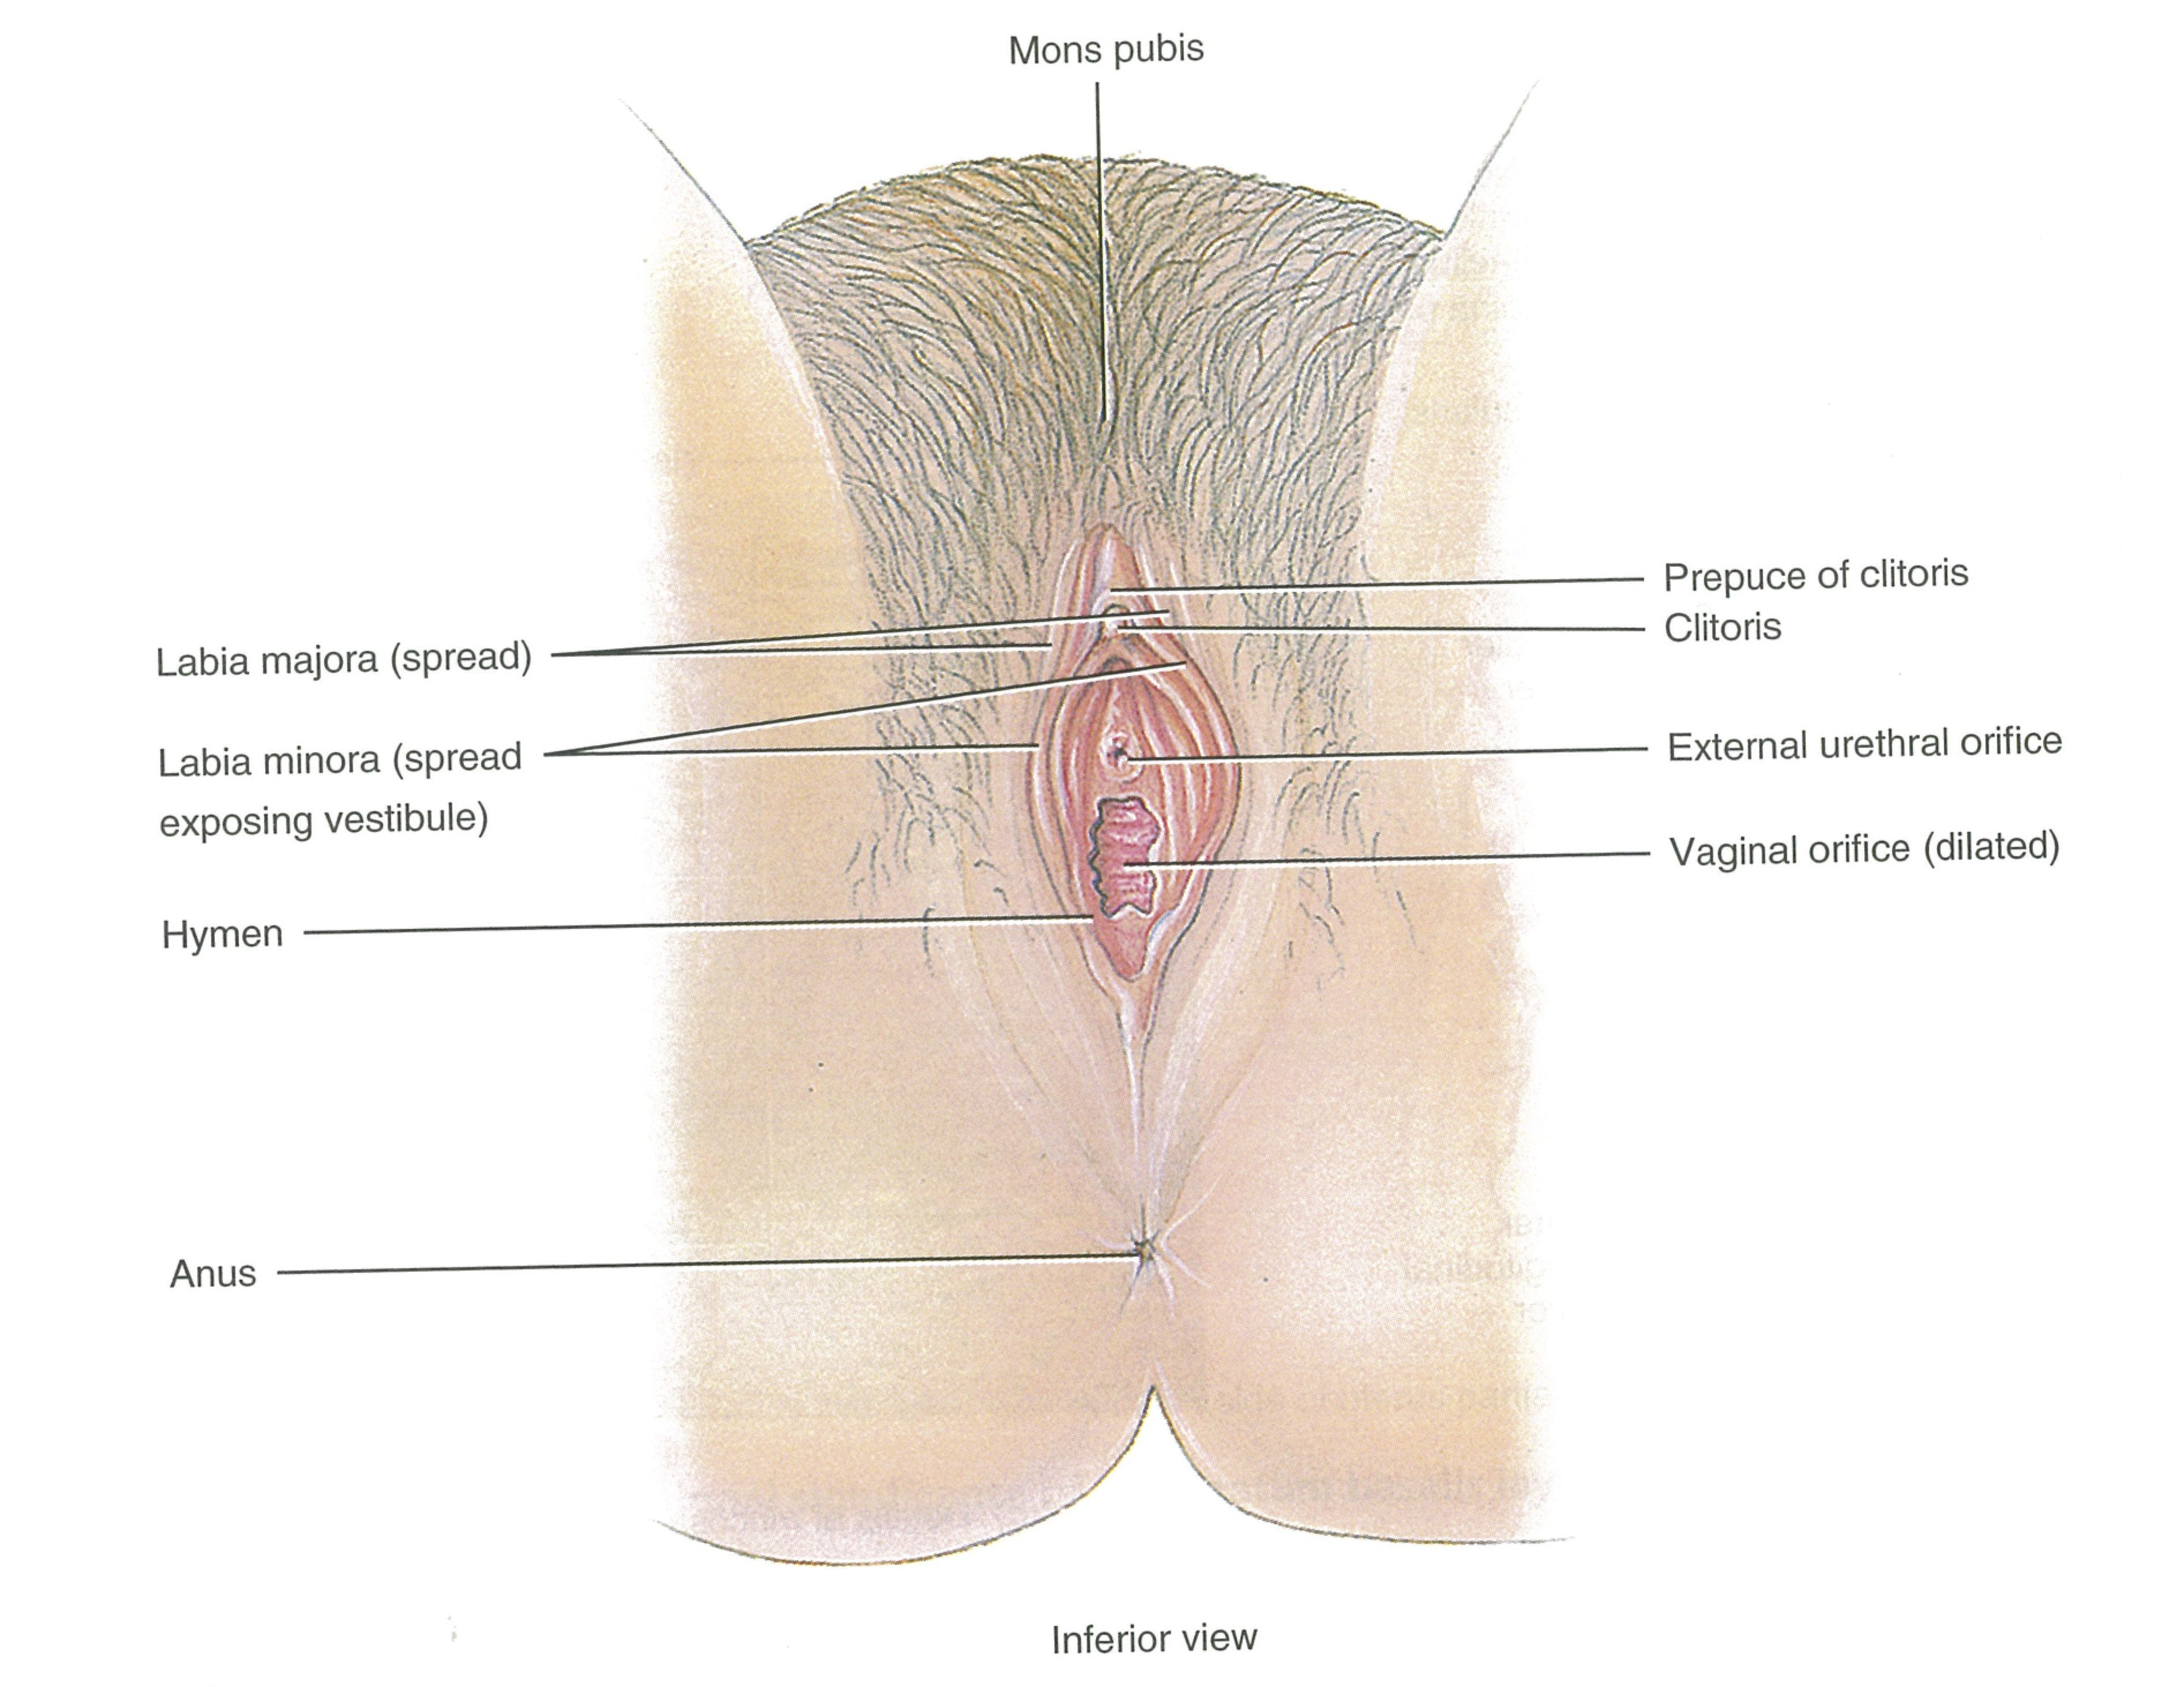 Anal Dilatation Porn Tube Free cant feel my clitoris . porn galleries.